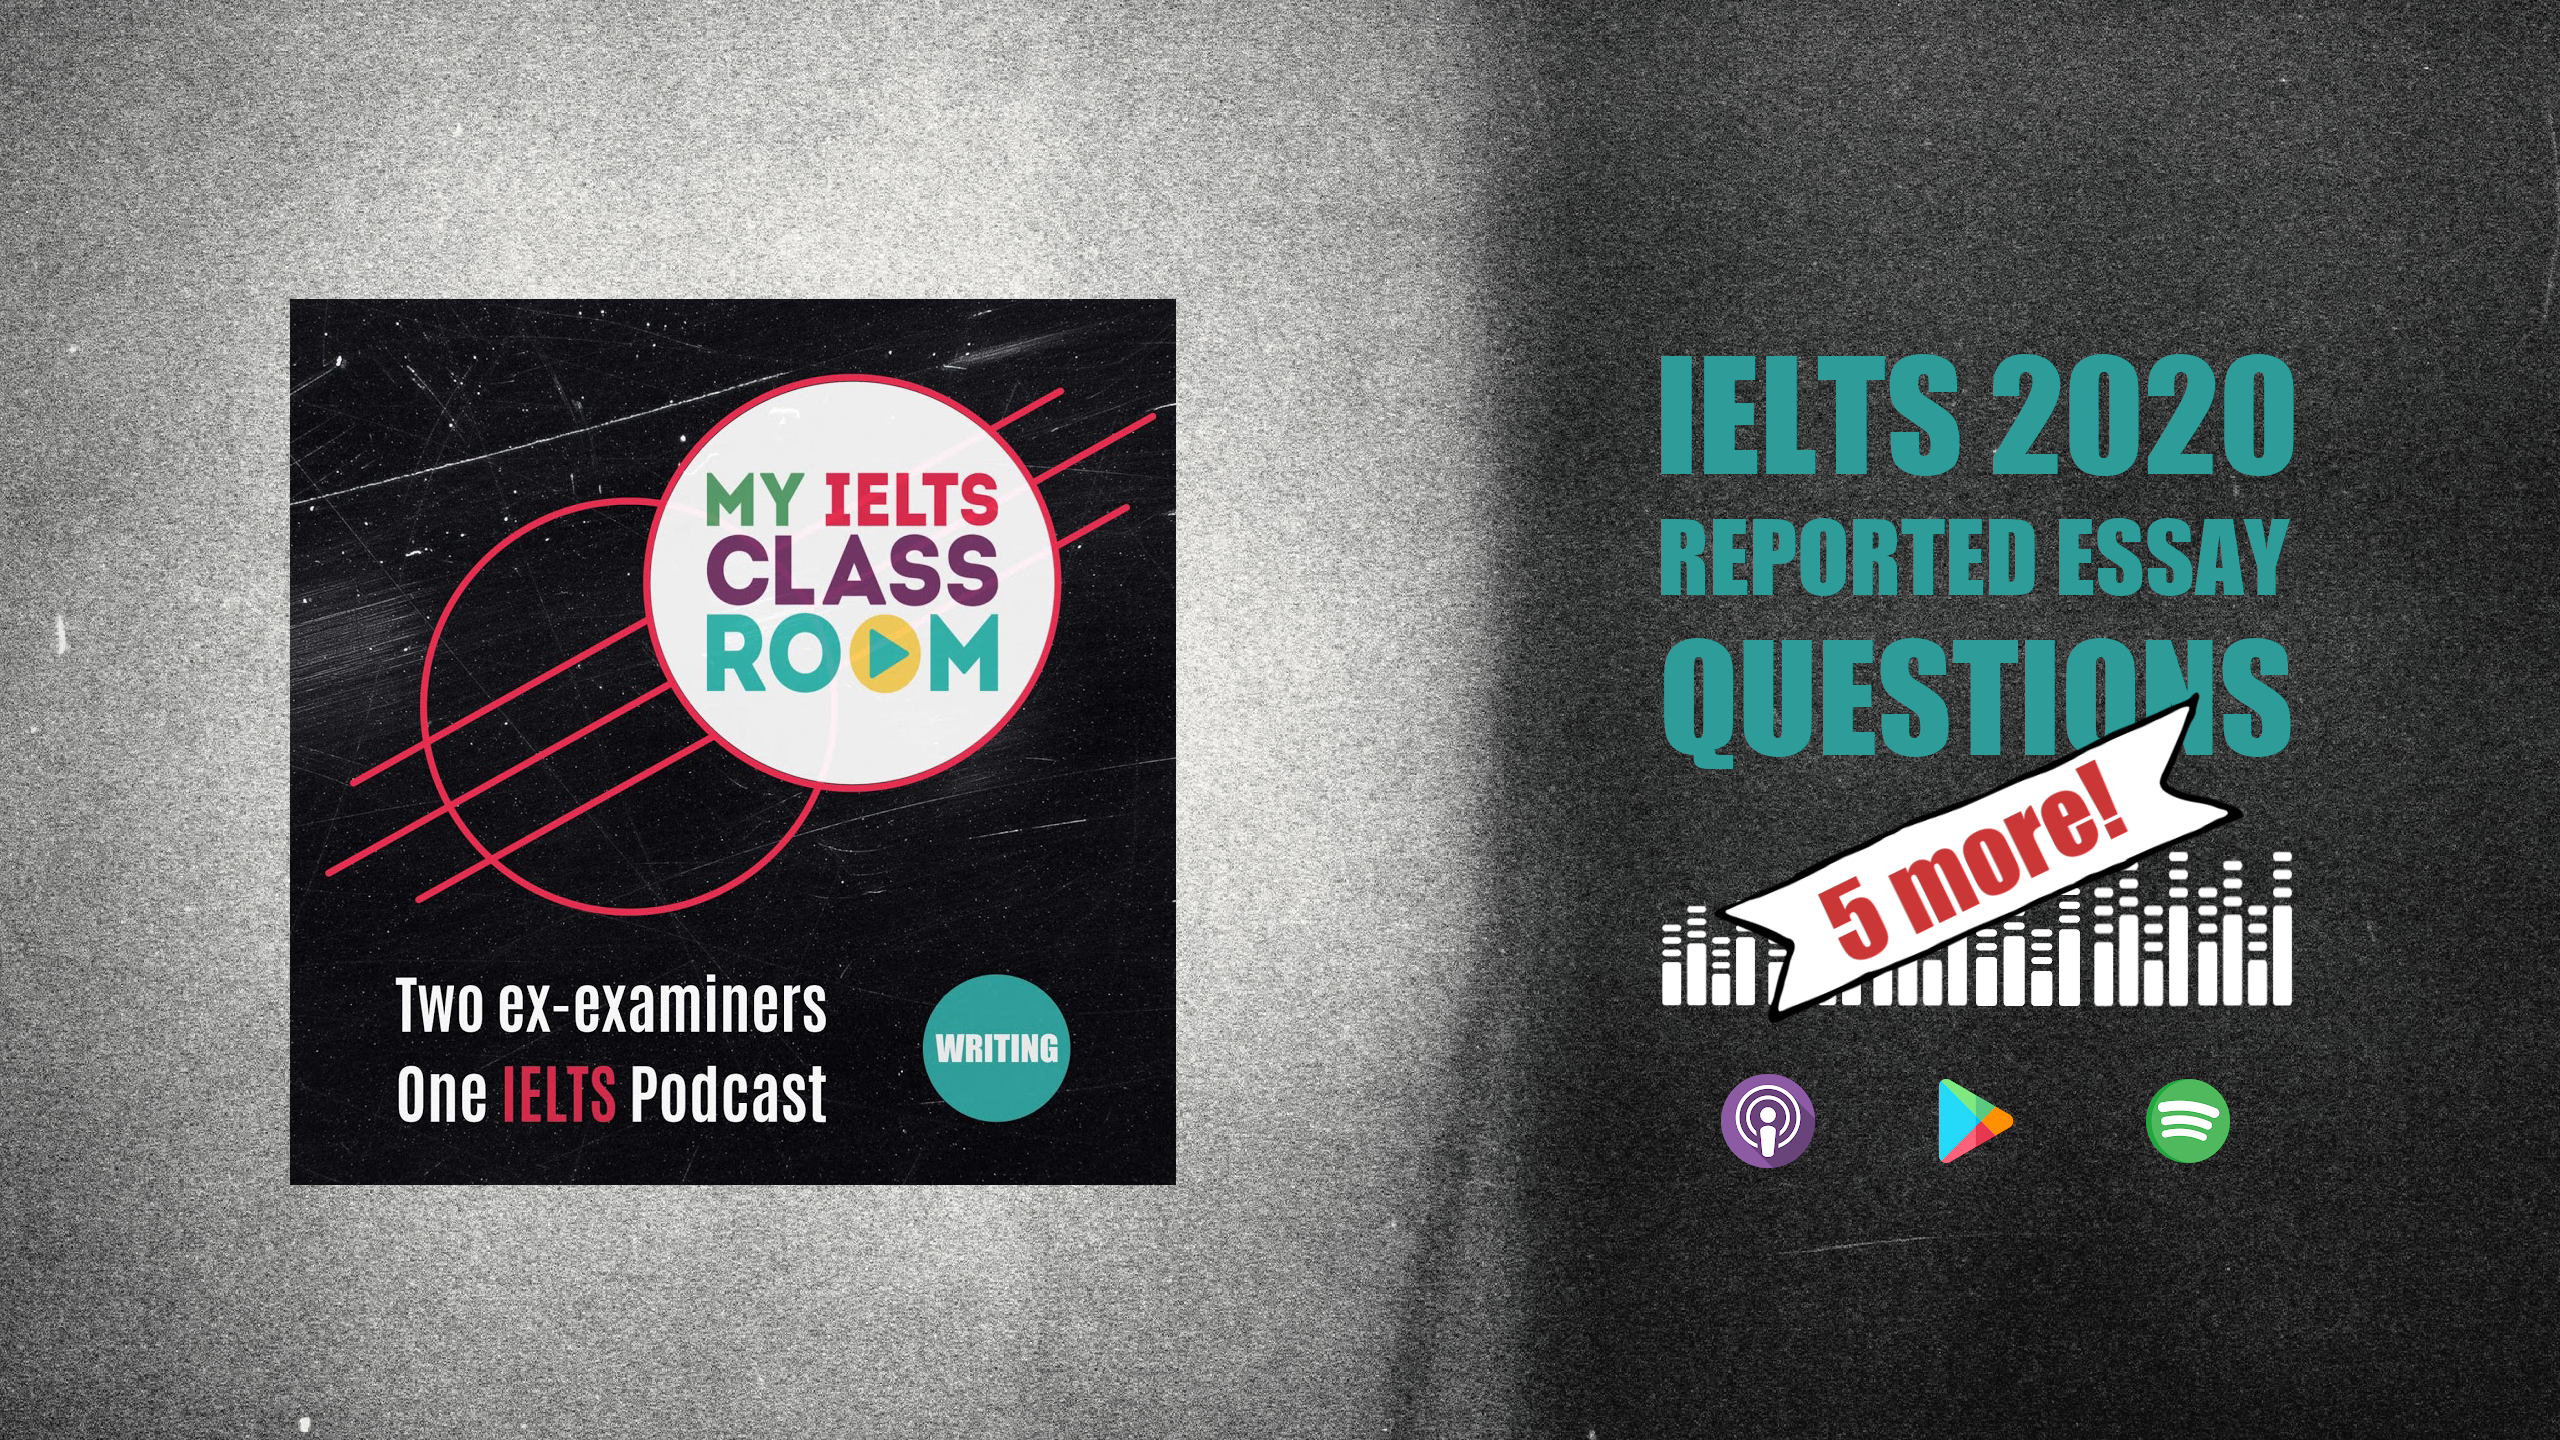 The words IELTS essay topics 2020 sit next to the Album cover for the My IELTS Classroom album cover